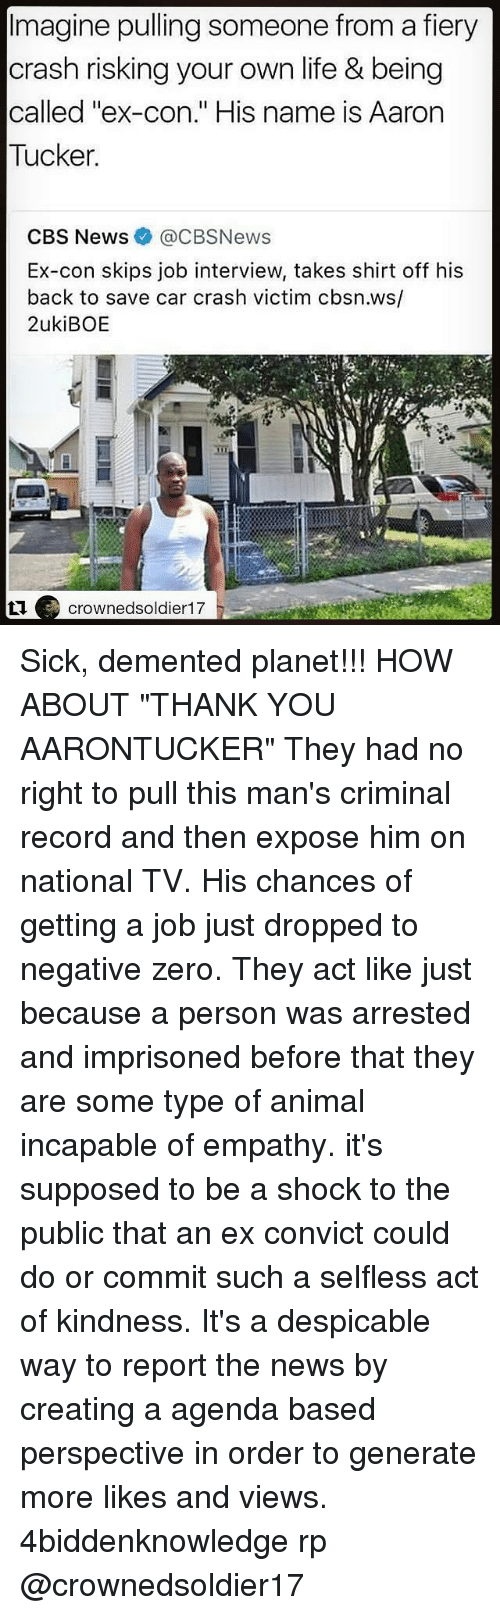 "Job Interview, Life, and Memes: Imagine pulling someone from a fiery  crash risking your own life & being  called ""ex-con."" His name is Aarorn  Tucker  CBS News@CBSNews  Ex-con skips job interview, takes shirt off his  back to save car crash victim cbsn.ws/  2ukiBOE  crownedsoldier17 Sick, demented planet!!! HOW ABOUT ""THANK YOU AARONTUCKER"" They had no right to pull this man's criminal record and then expose him on national TV. His chances of getting a job just dropped to negative zero. They act like just because a person was arrested and imprisoned before that they are some type of animal incapable of empathy. it's supposed to be a shock to the public that an ex convict could do or commit such a selfless act of kindness. It's a despicable way to report the news by creating a agenda based perspective in order to generate more likes and views. 4biddenknowledge rp @crownedsoldier17"